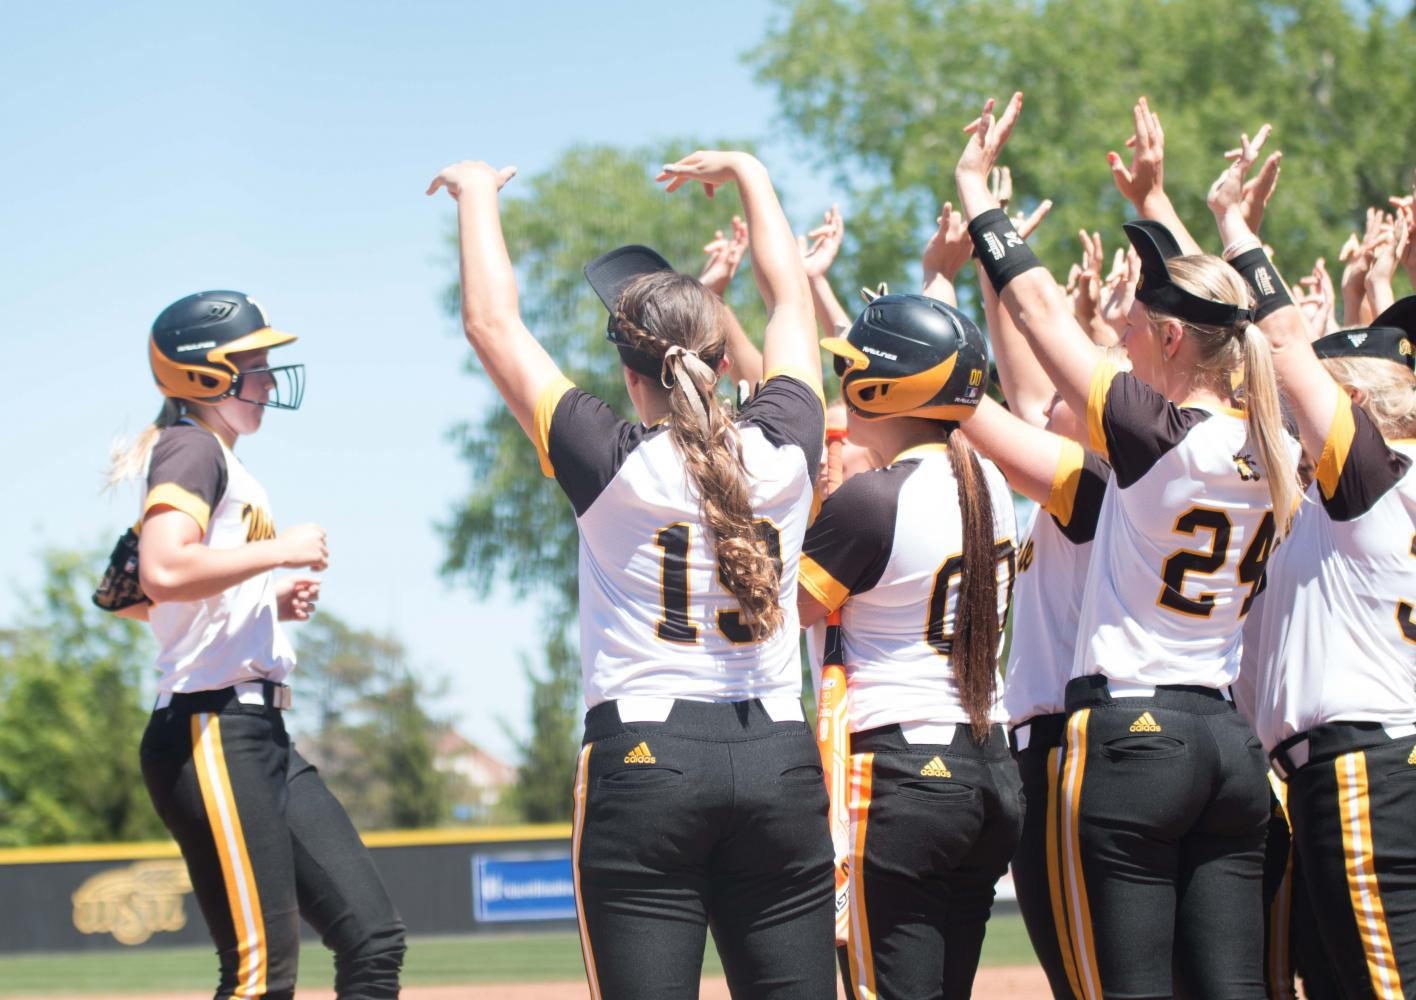 Members of the Shocker softball team greet sophomore Laurie Derrico after a home run against Evansville.